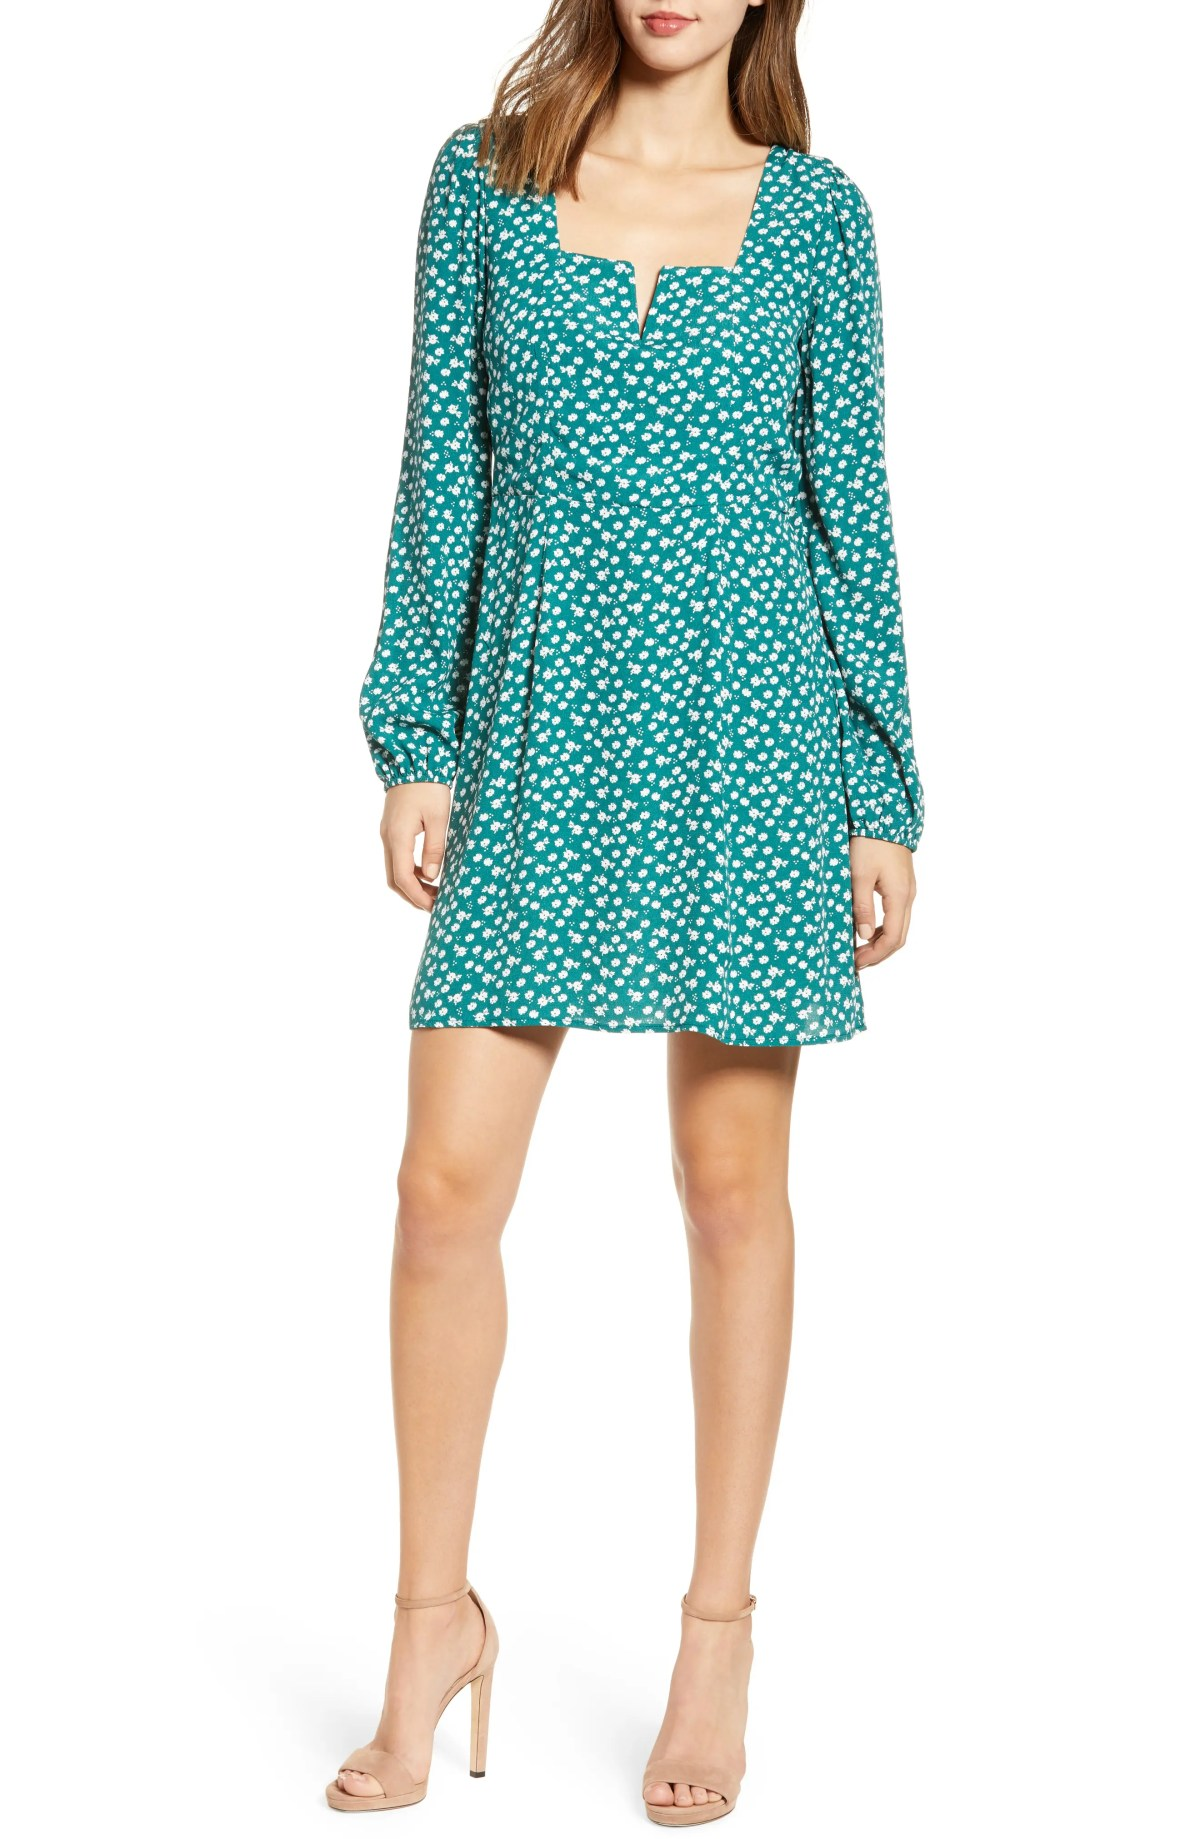 ROW A Printed Minidress, Main, color, TEAL FLORAL